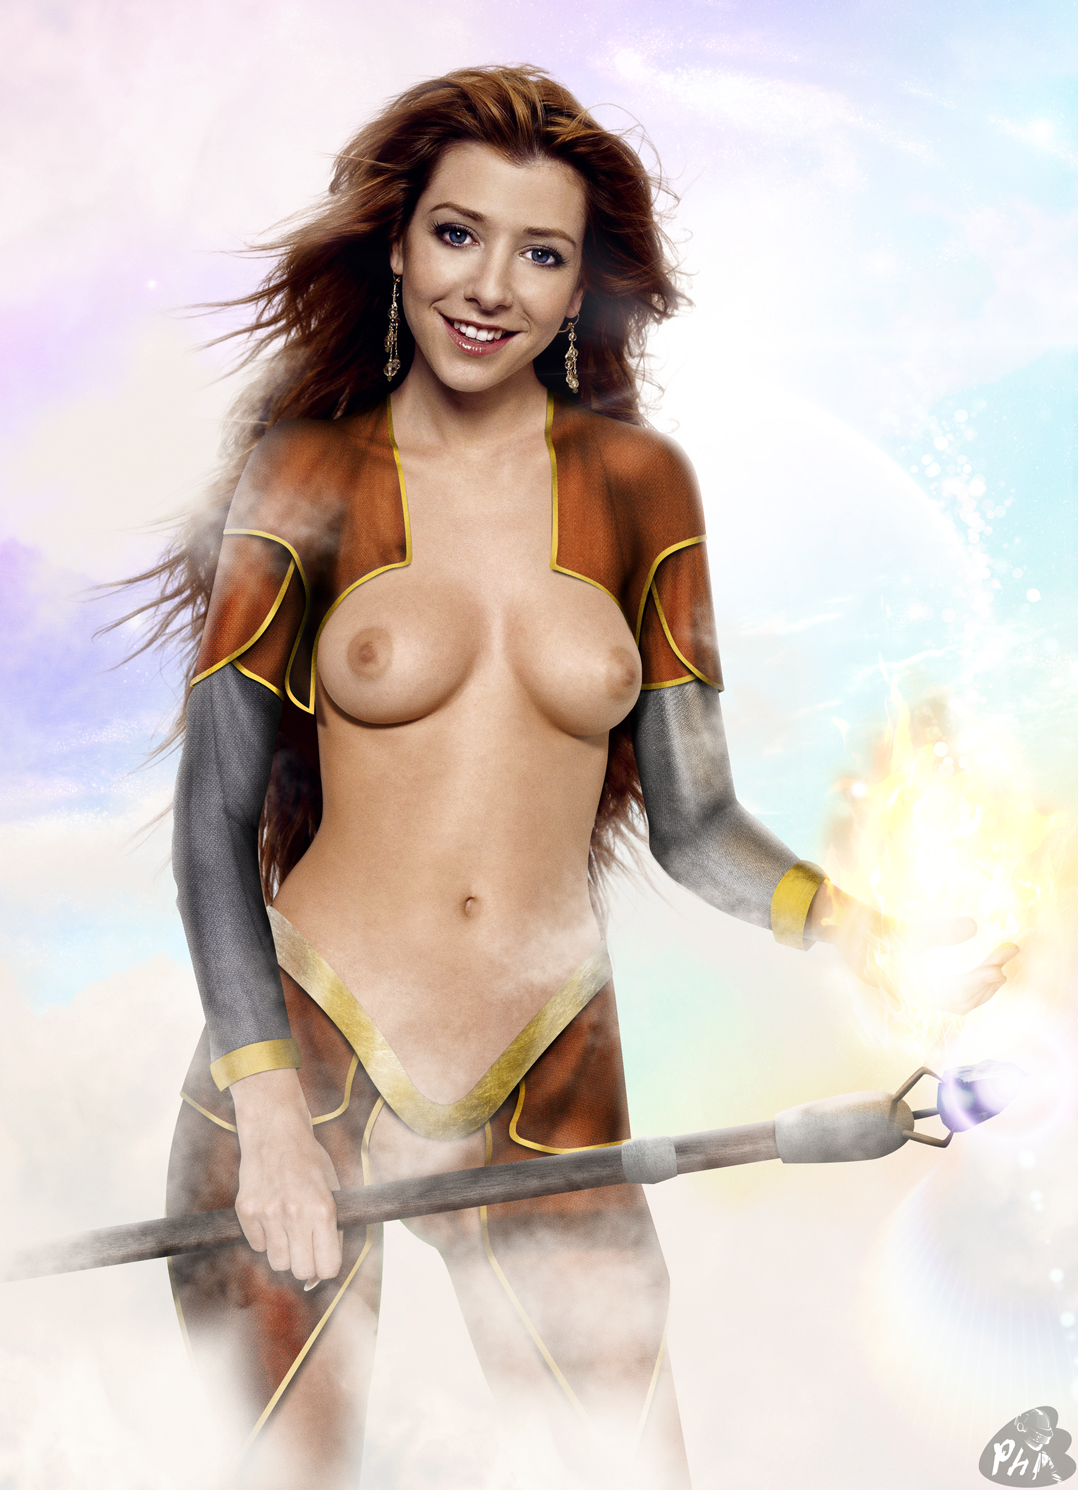 Actress alyson hannigan naked free pictures — photo 2